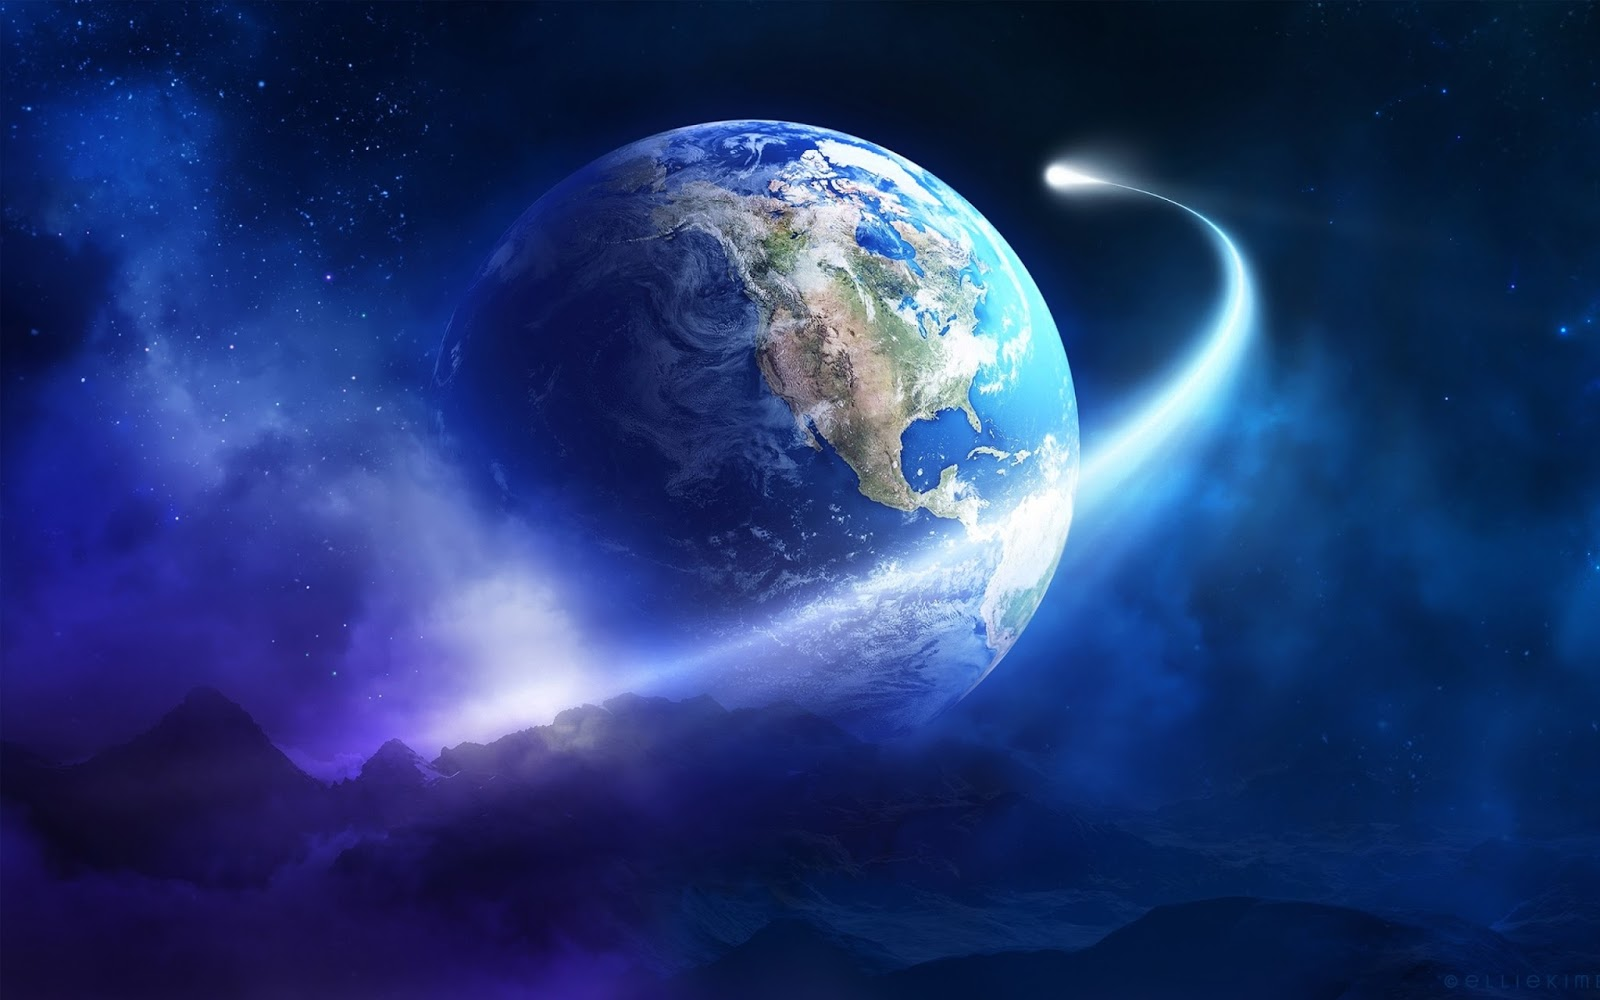 Awesome Wallpapers For Android: Space Awesome 3D Wallpaper For Android